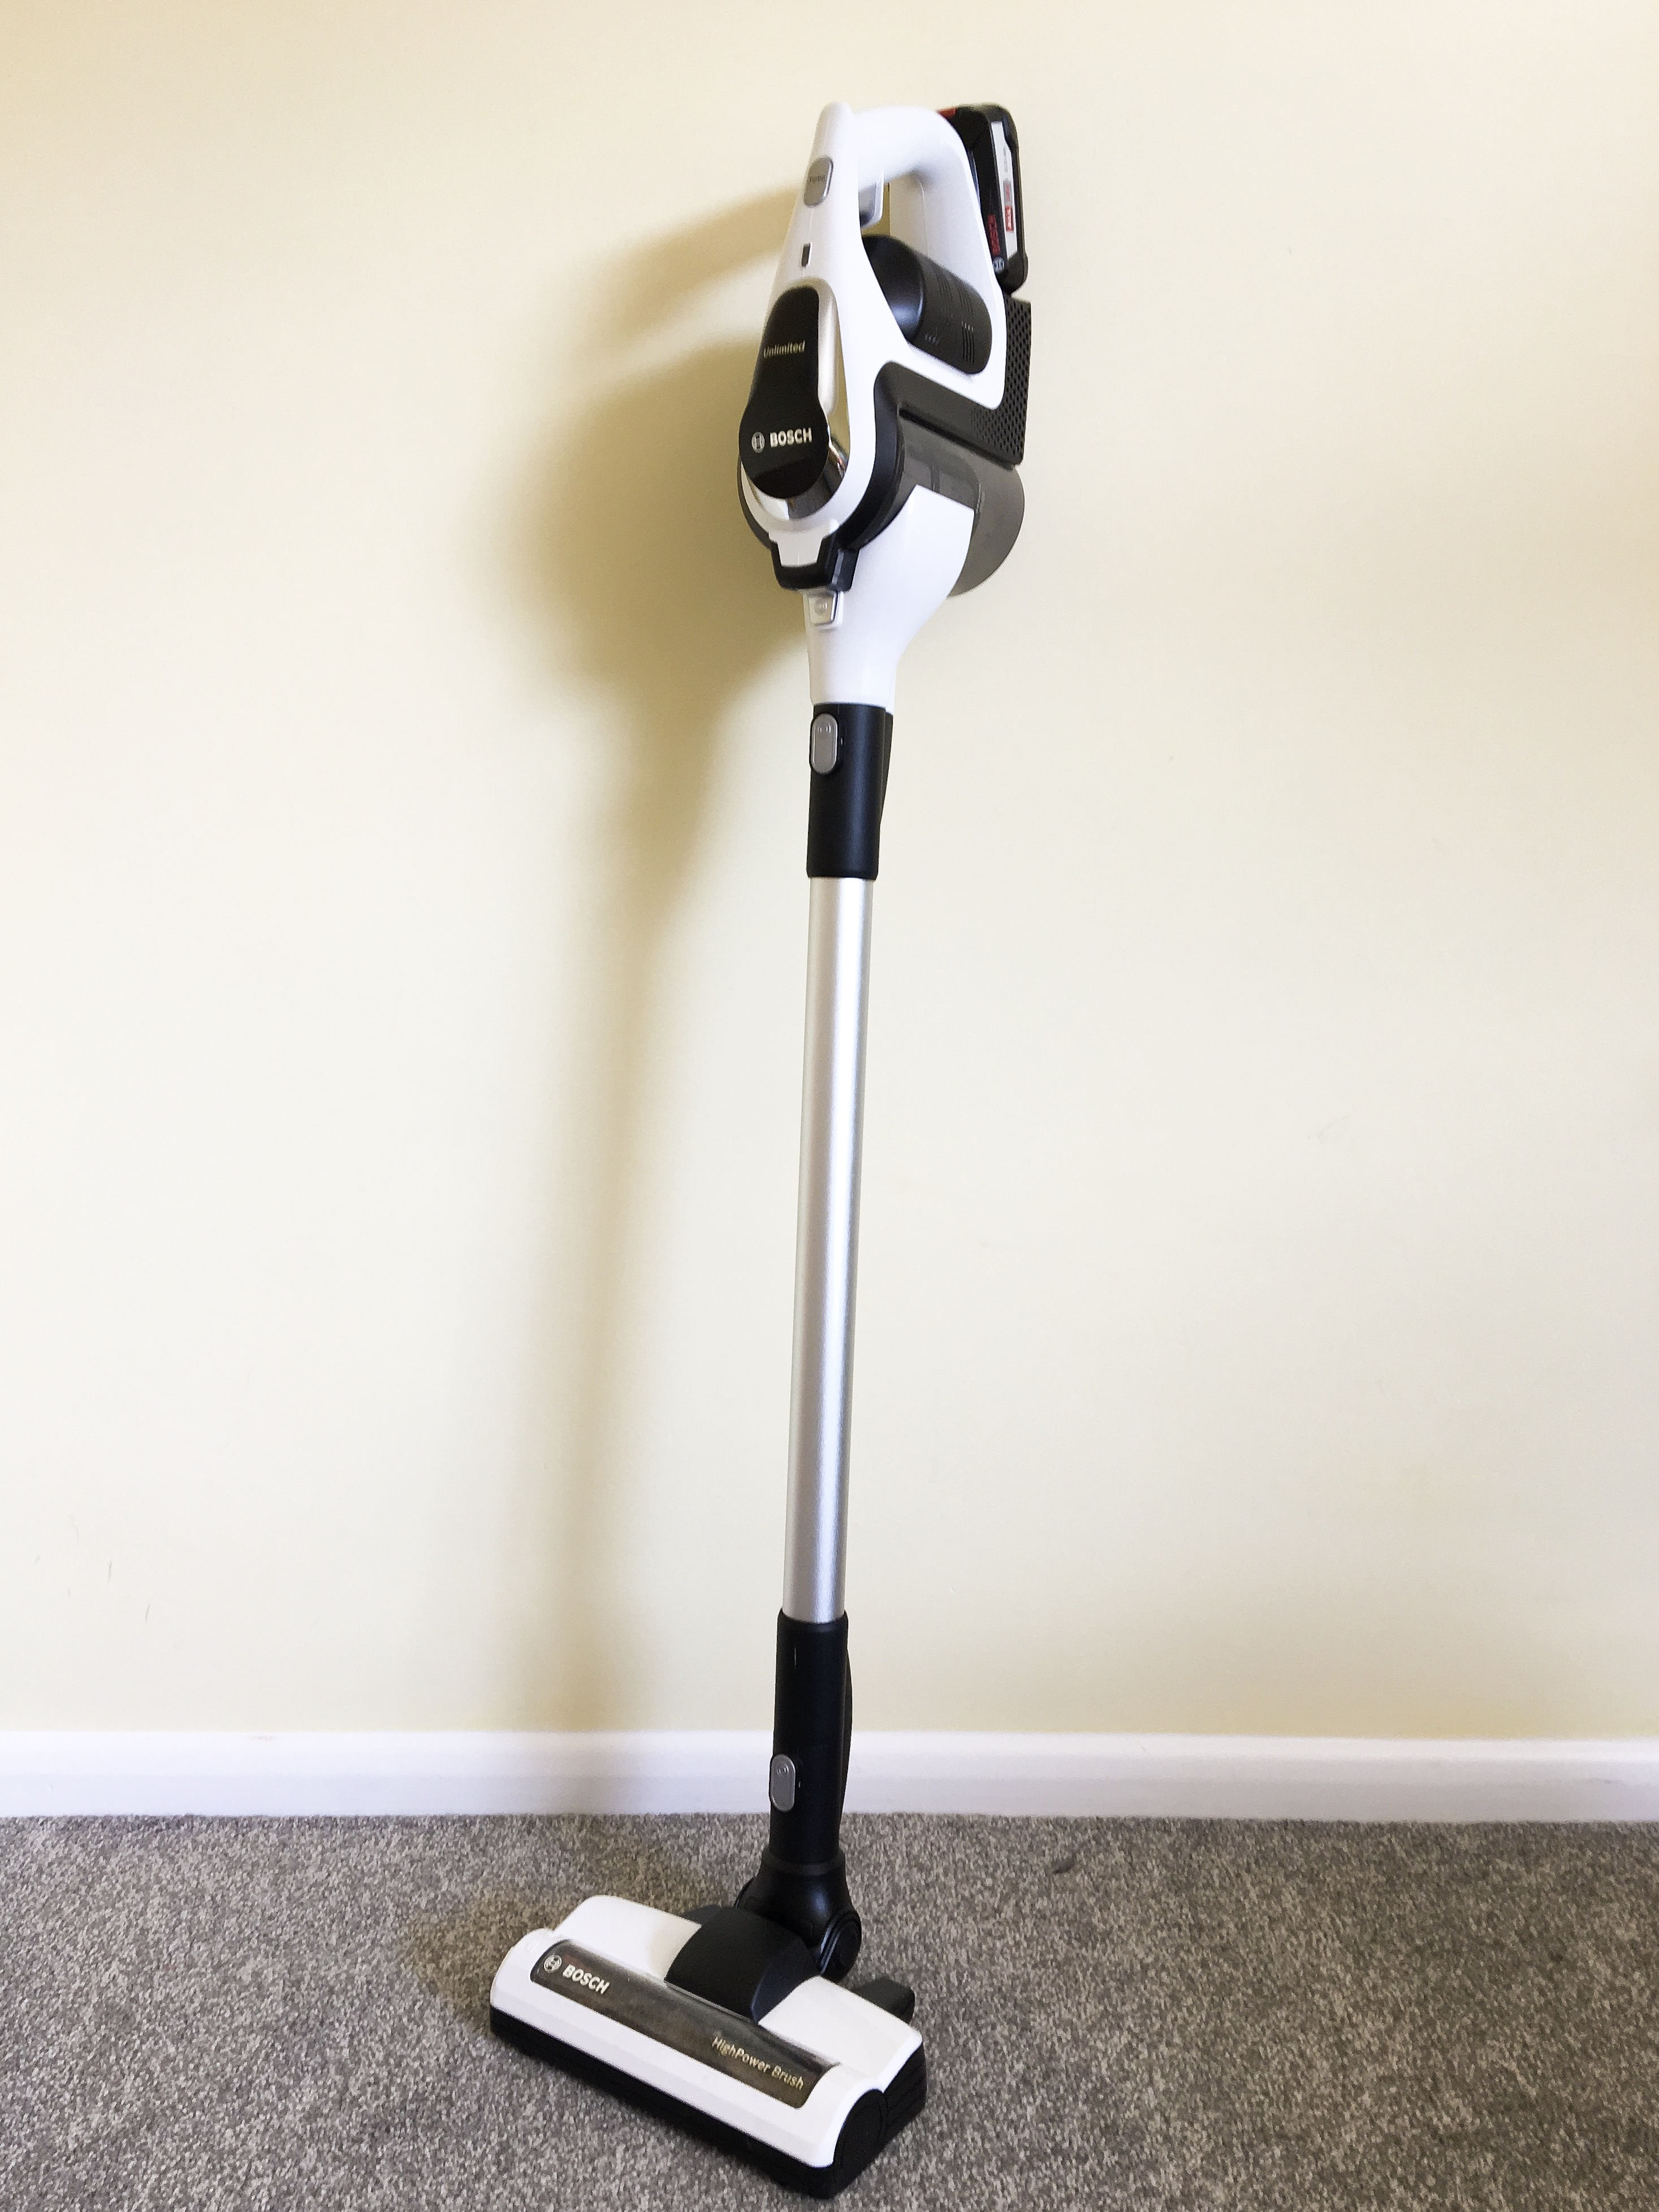 Bosch cordless vacuum cleaner review